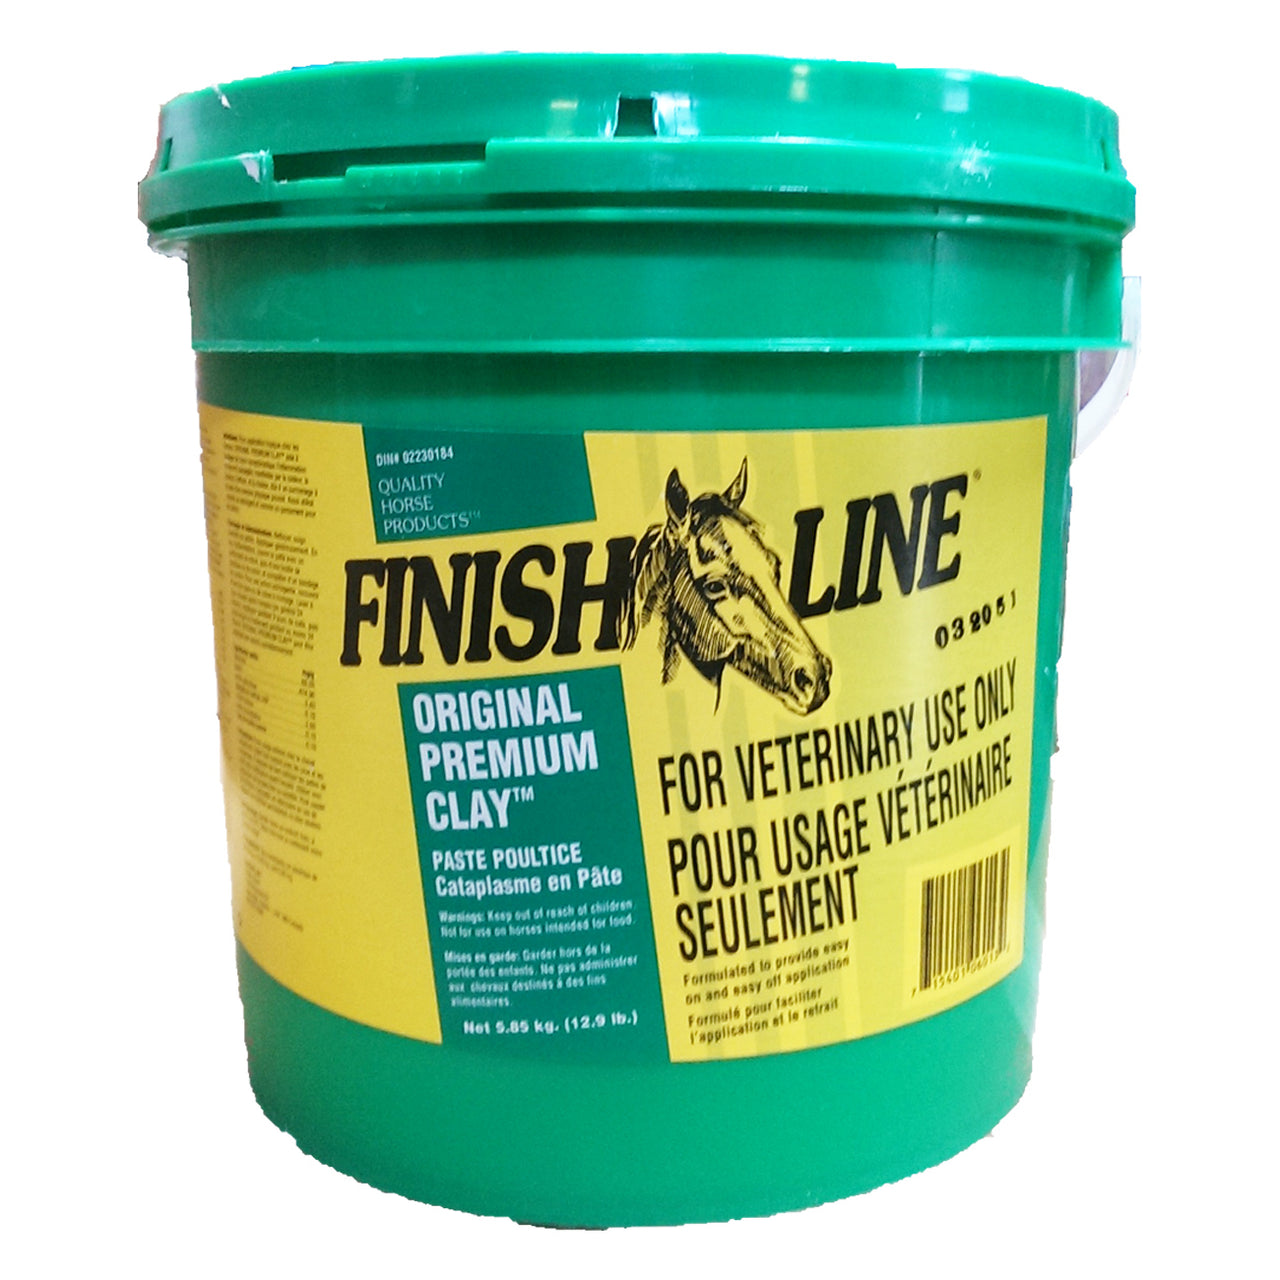 Finish Line Original Premium Clay Poultice (3 Sizes) - 5.85 Kg - Finish Line Horse Products - Canada